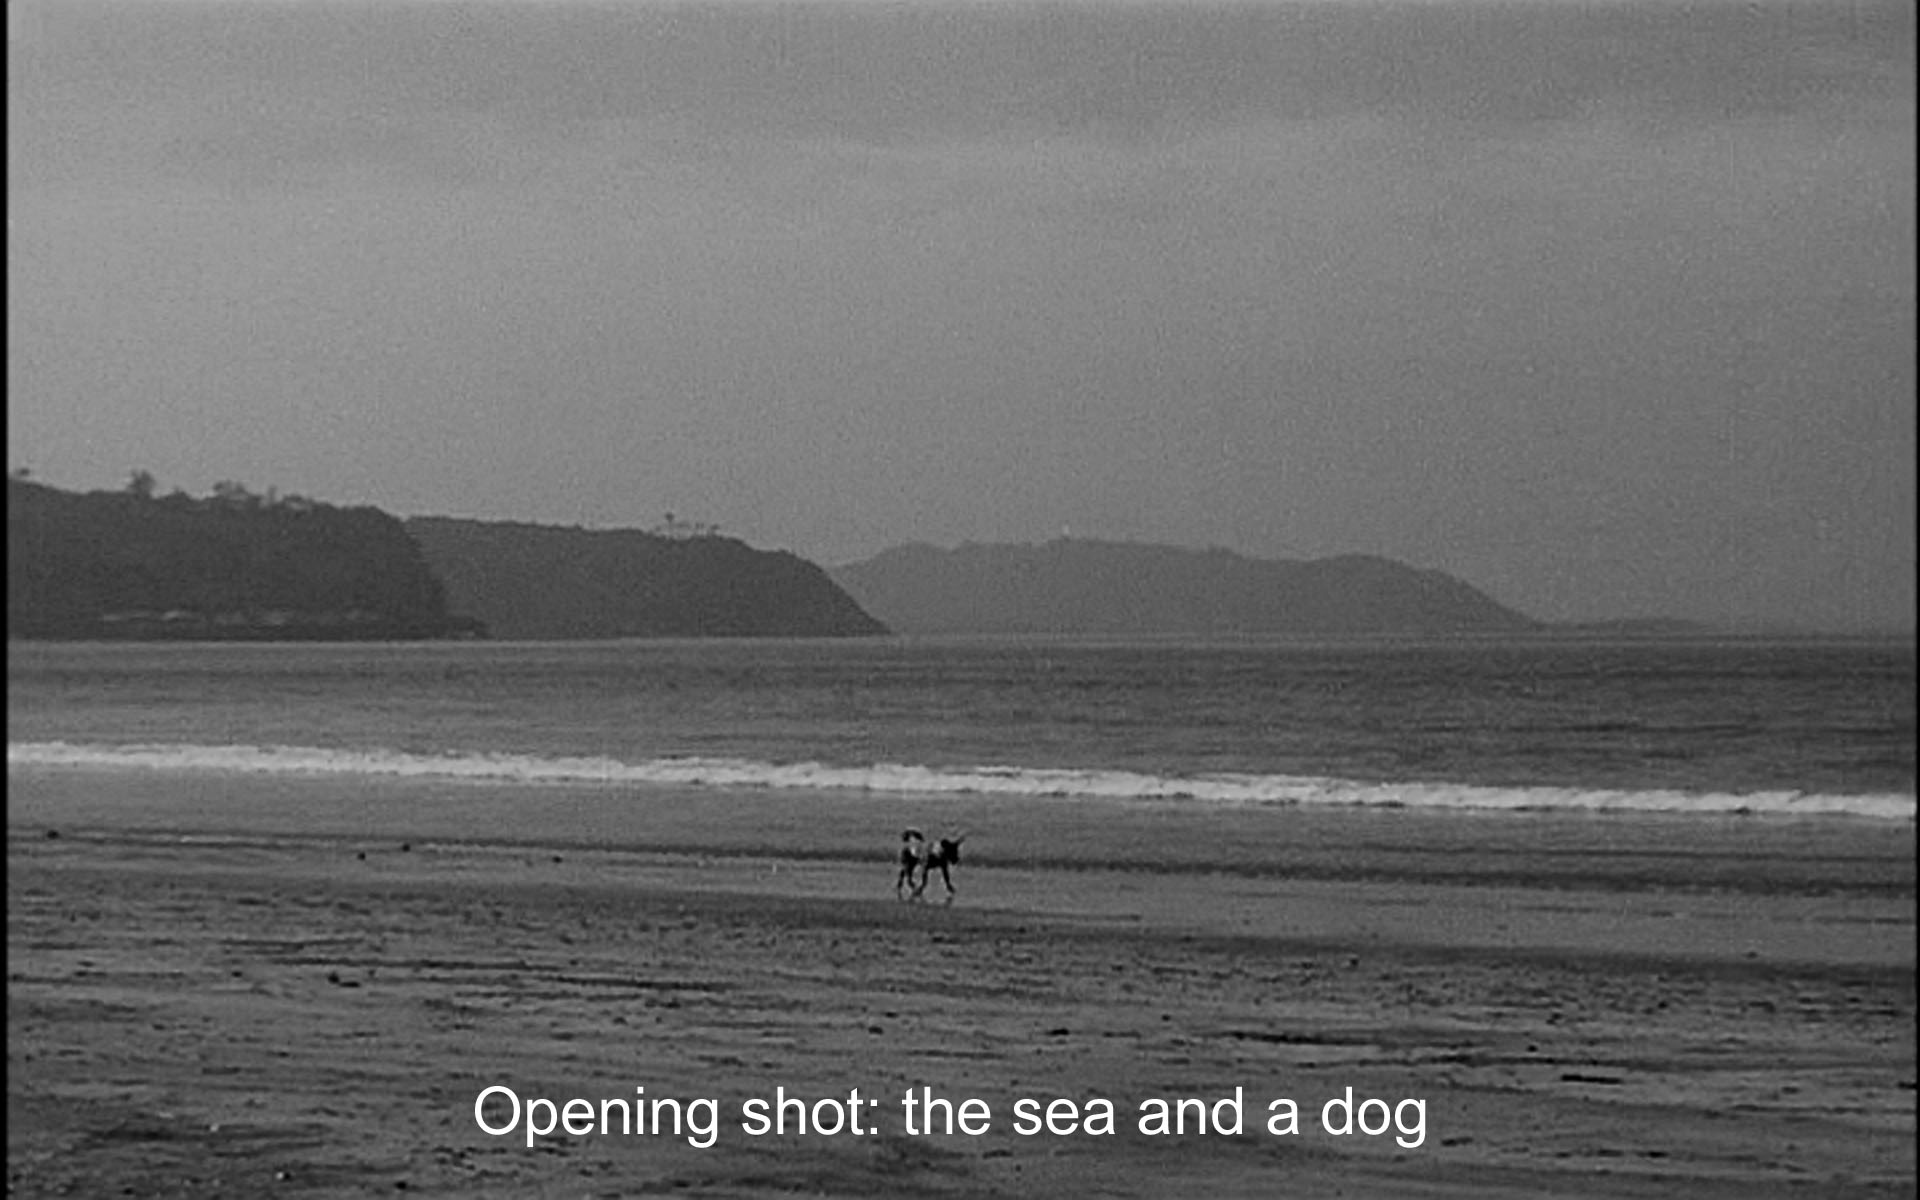 The opening shot: the sea and a dog